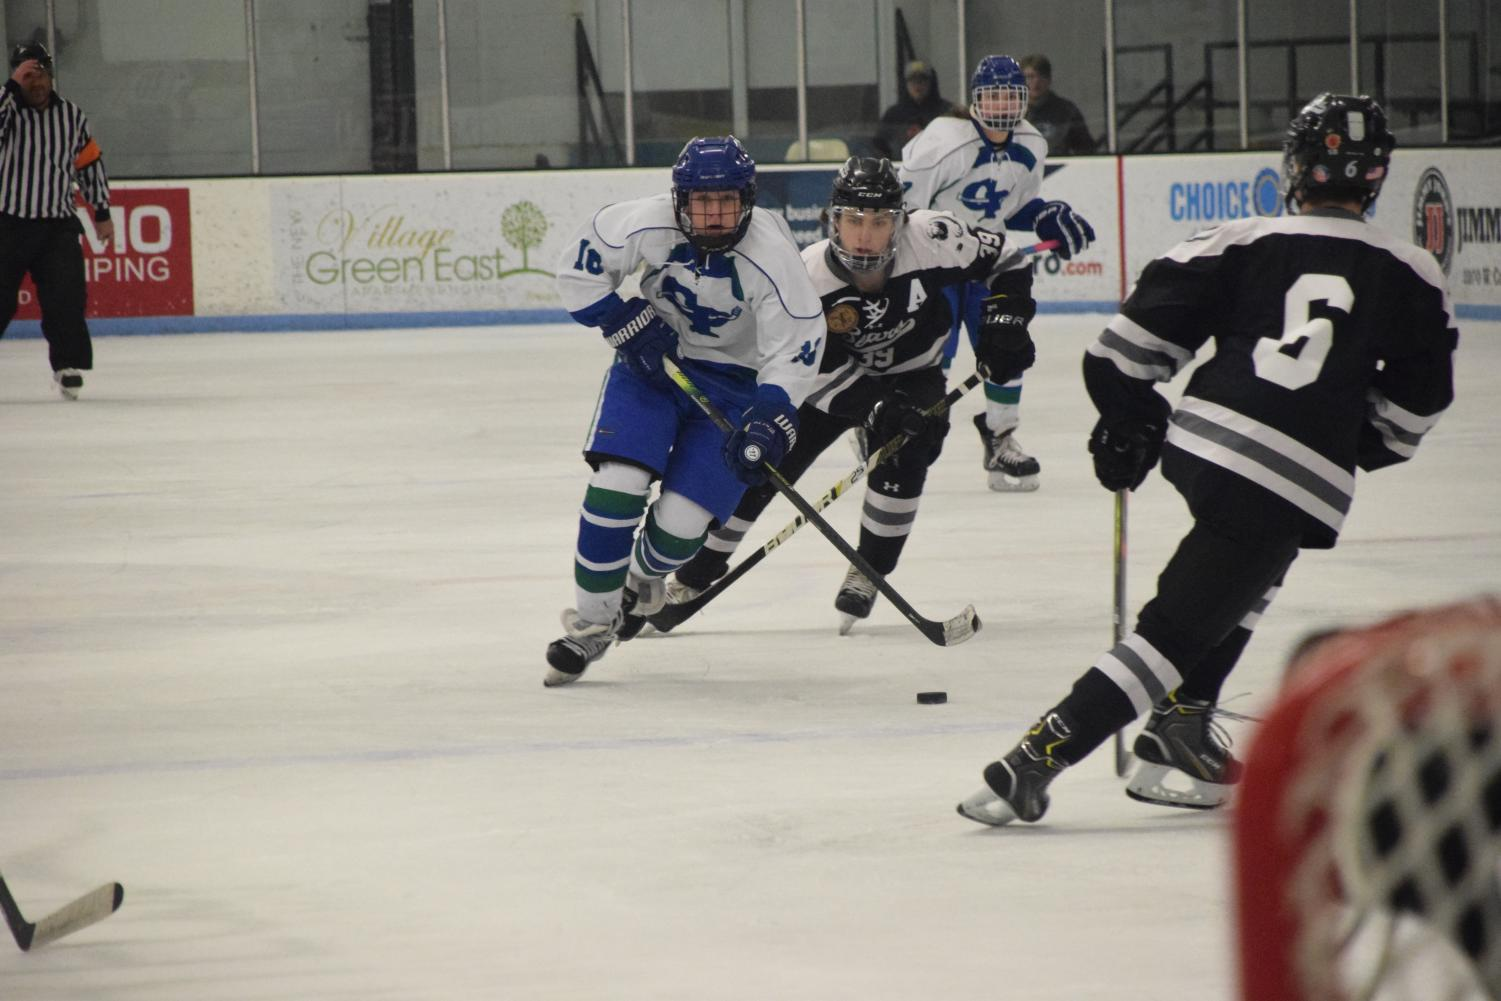 Bluebirds take down Ice Bears in OT